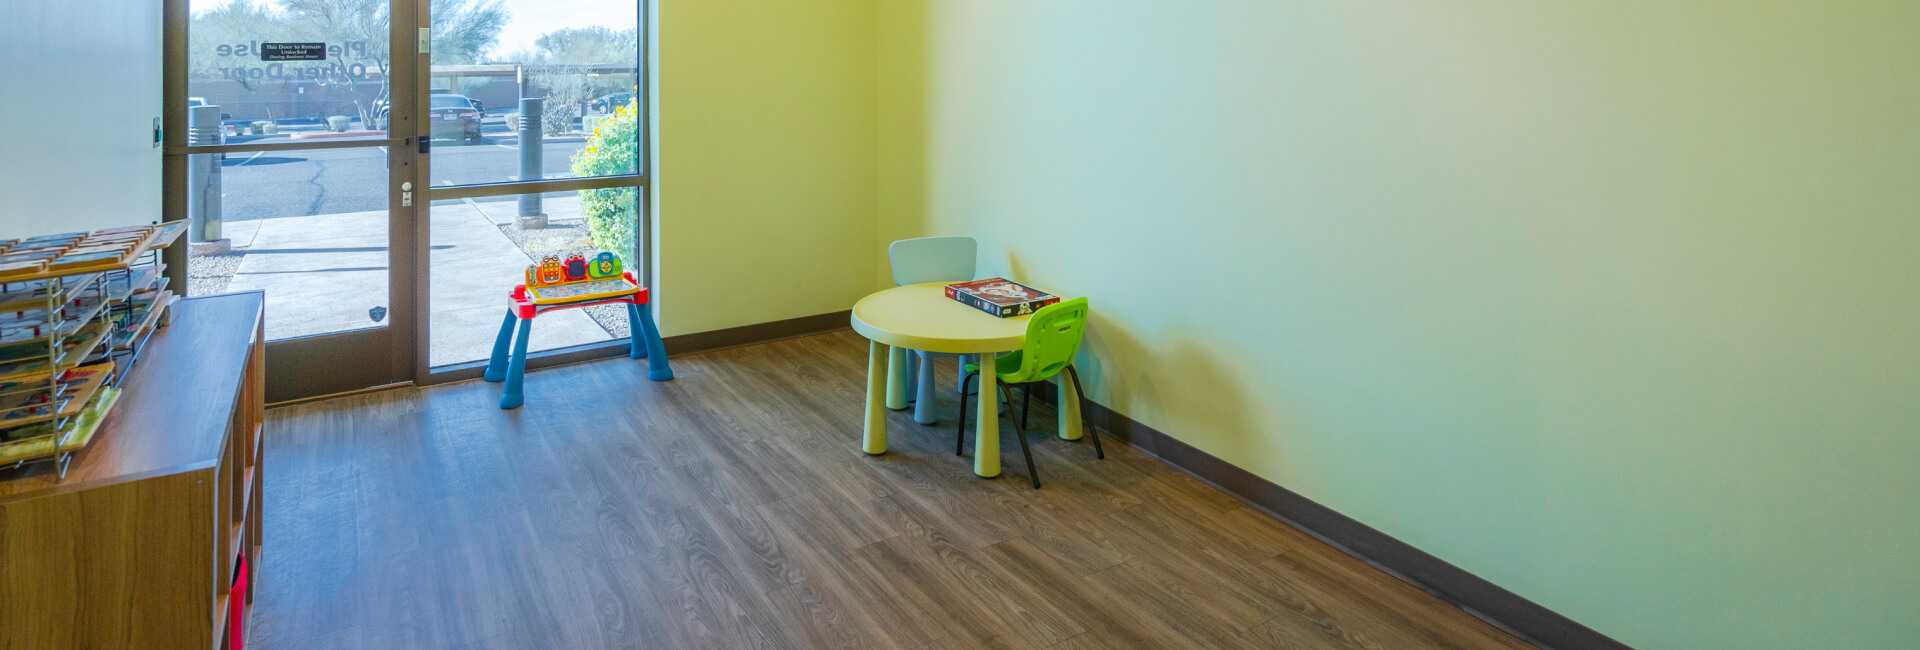 a room inside the Scottsdale Children's Institute with a bookshelf and table in the corner